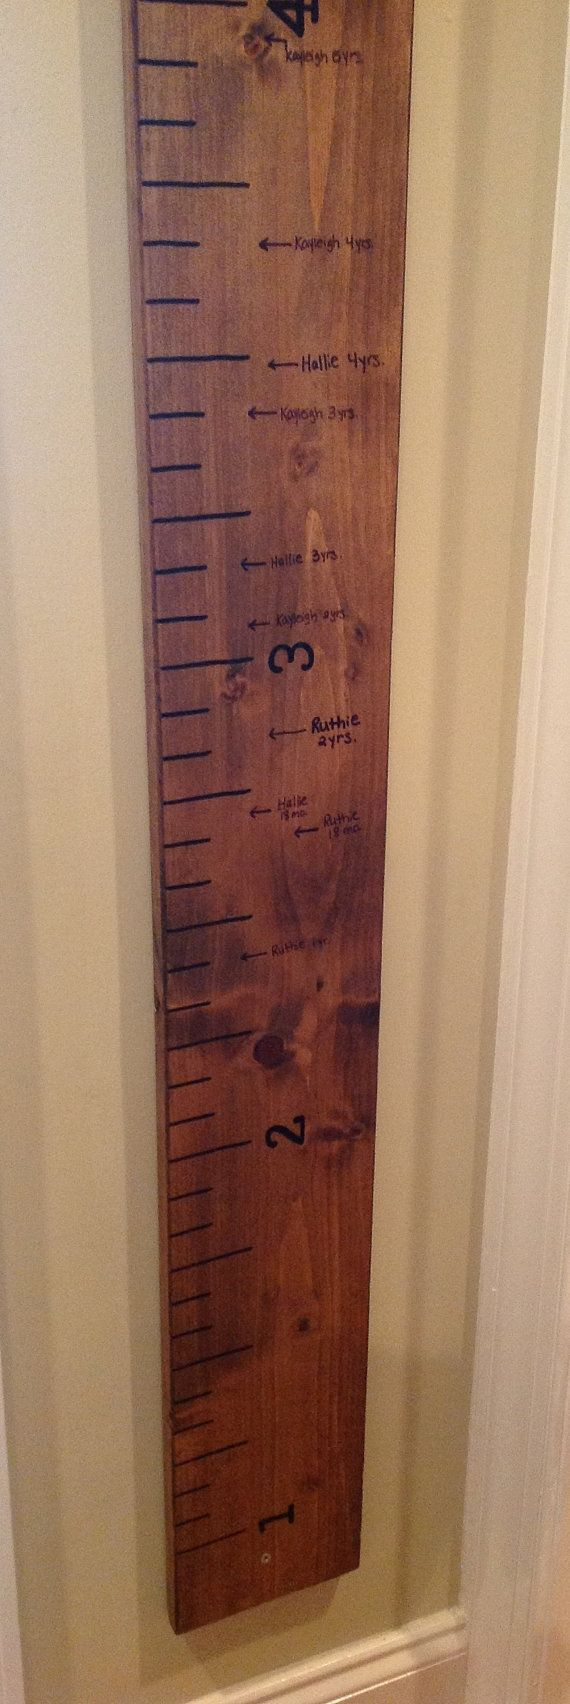 Take It To Go Child Growth Chart Ruler Adds Charm You Can Move With